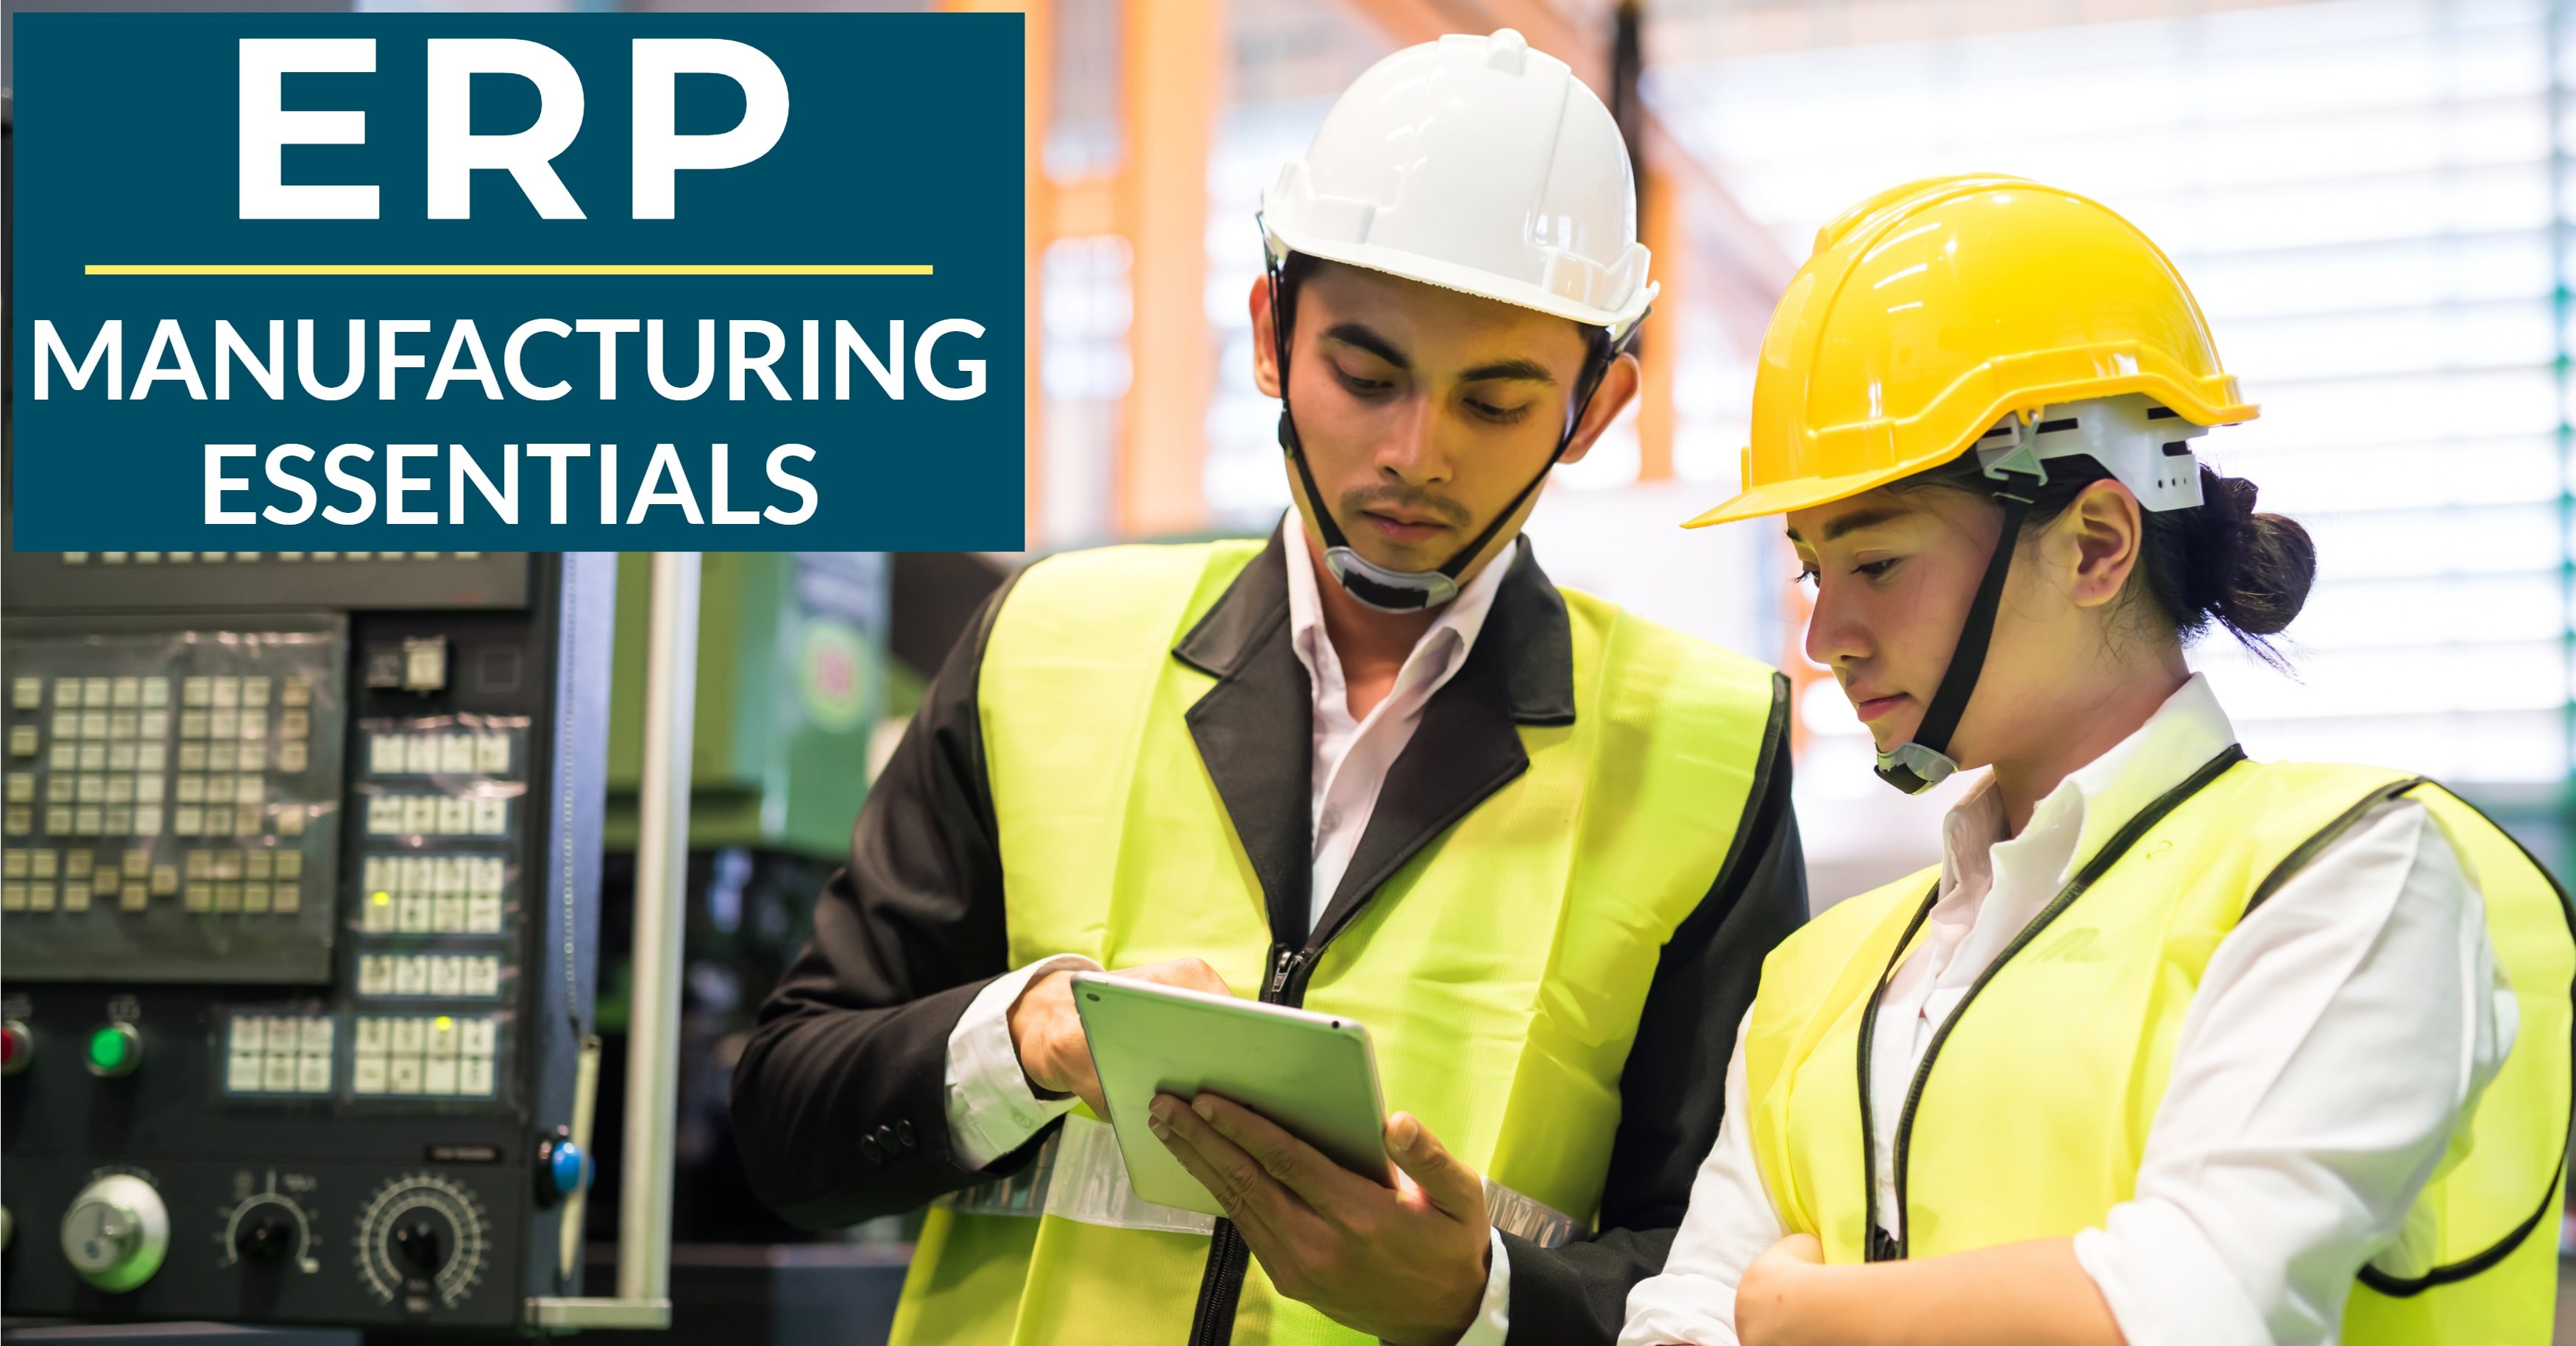 What is Manufacturing ERP?